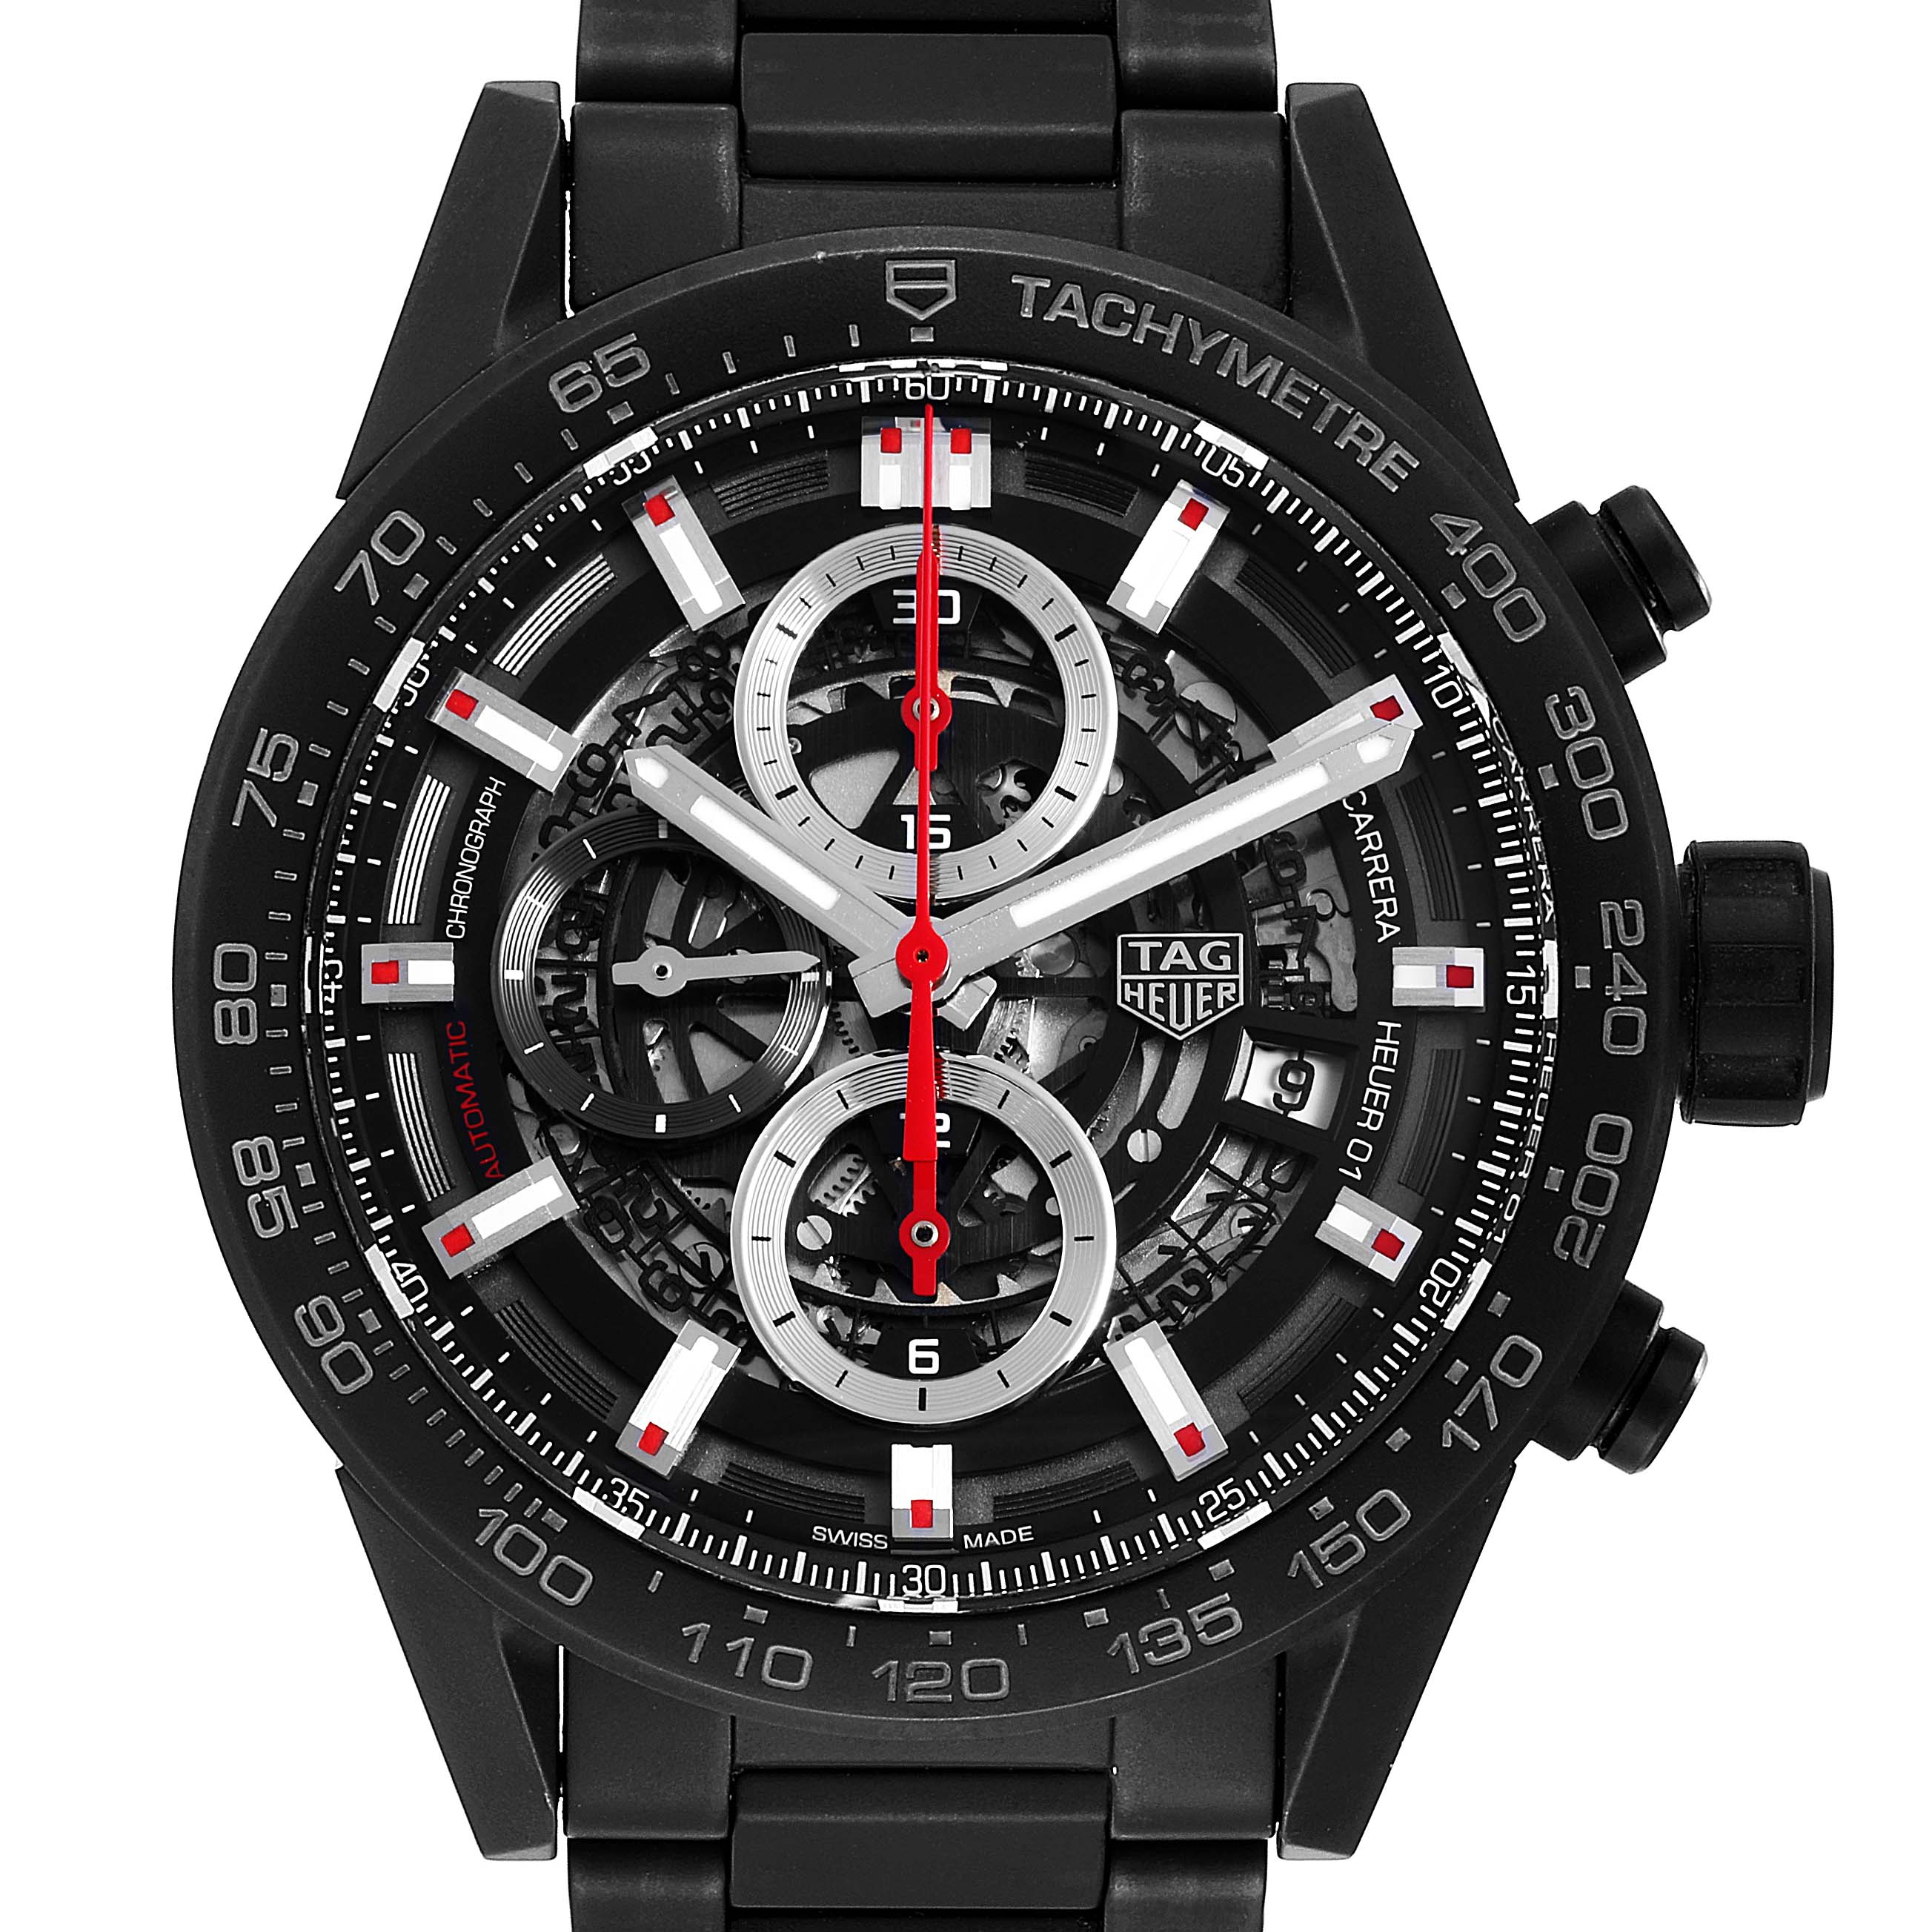 Photo of TAG Heuer Carrera Calibre 01 Skeleton Mens Watch CAR2090 Box